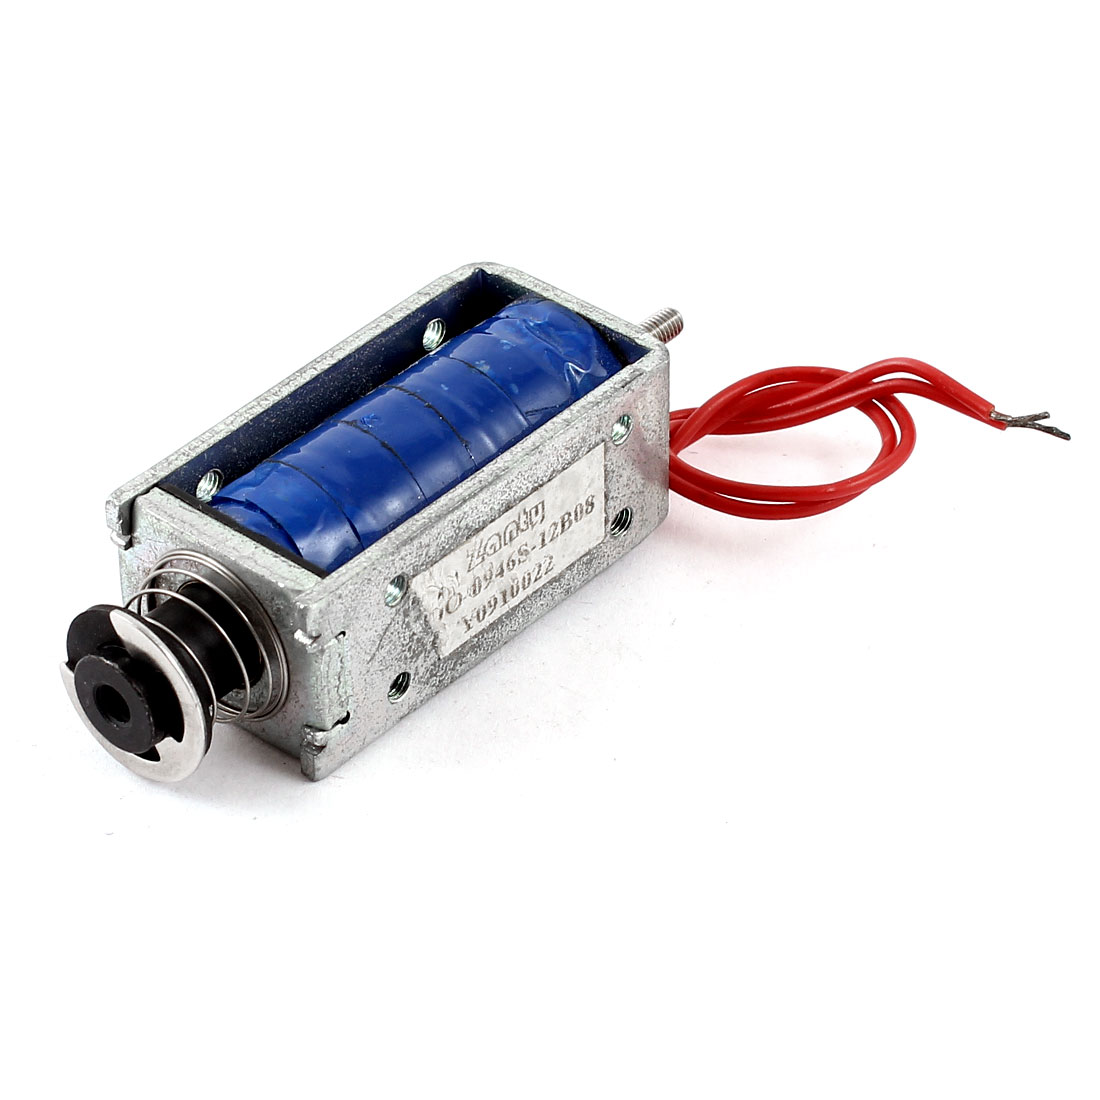 DC 12V 18W 5mm 560g Pull Type Open Frame Linear Motion Solenoid Electromagnet Actuator